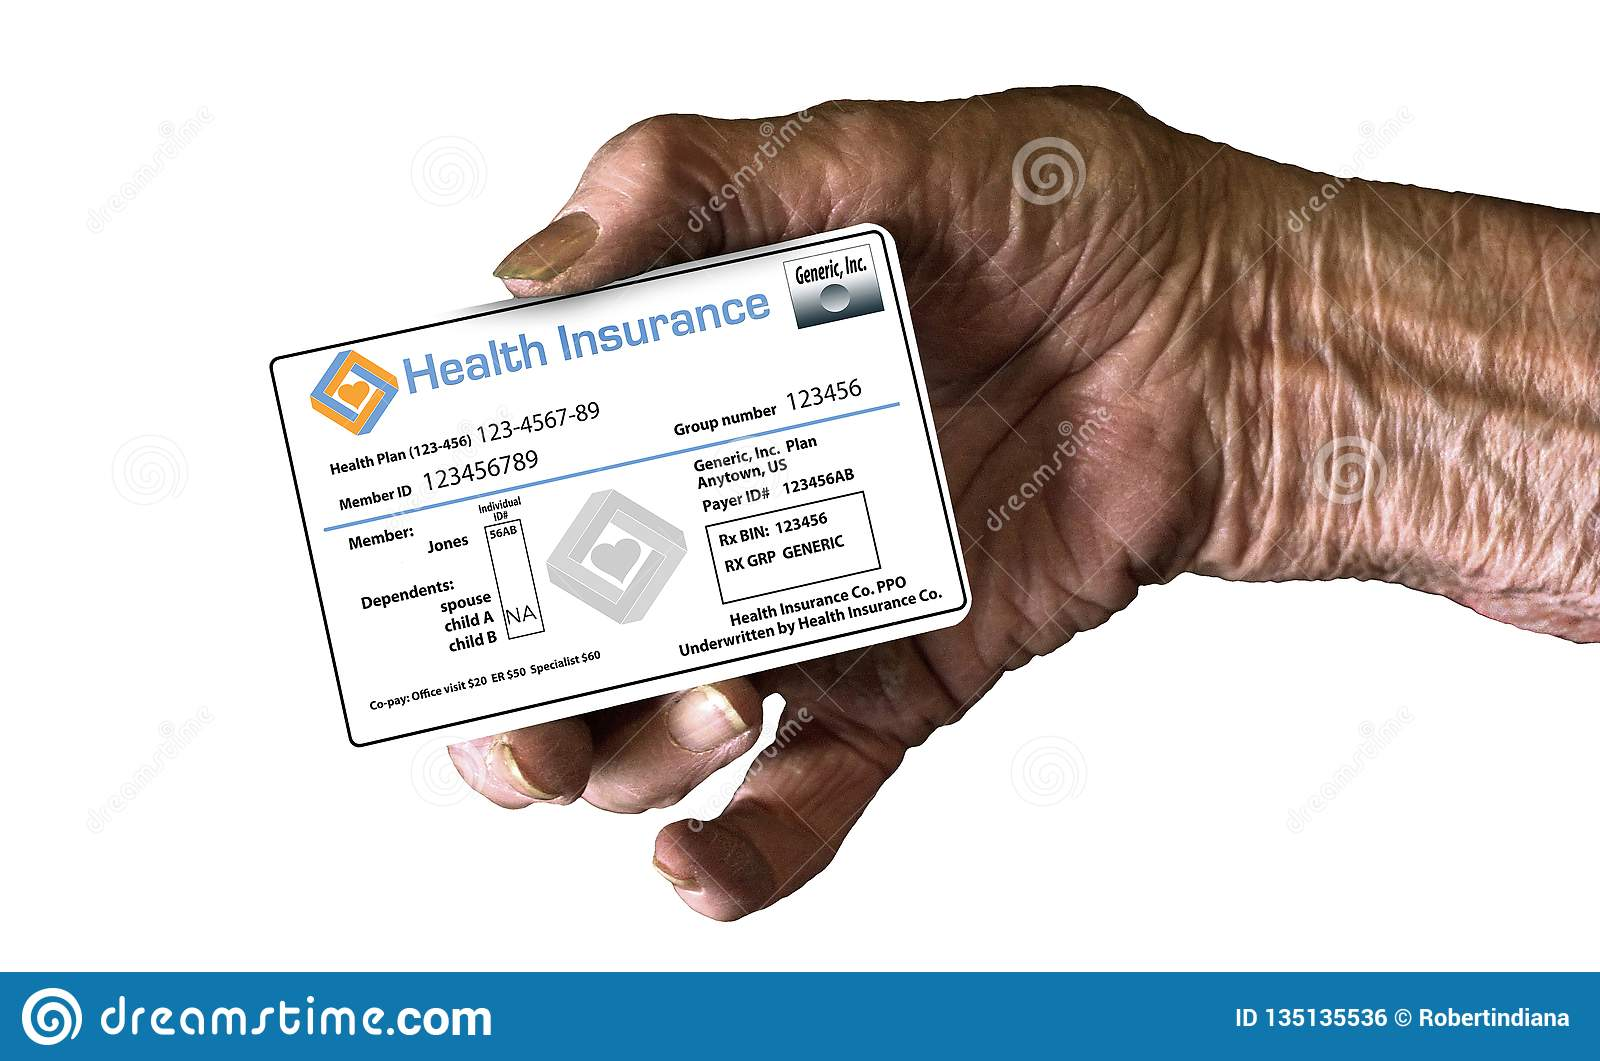 An elderly hand holds a medical insurance ID card to illustrate healthcare